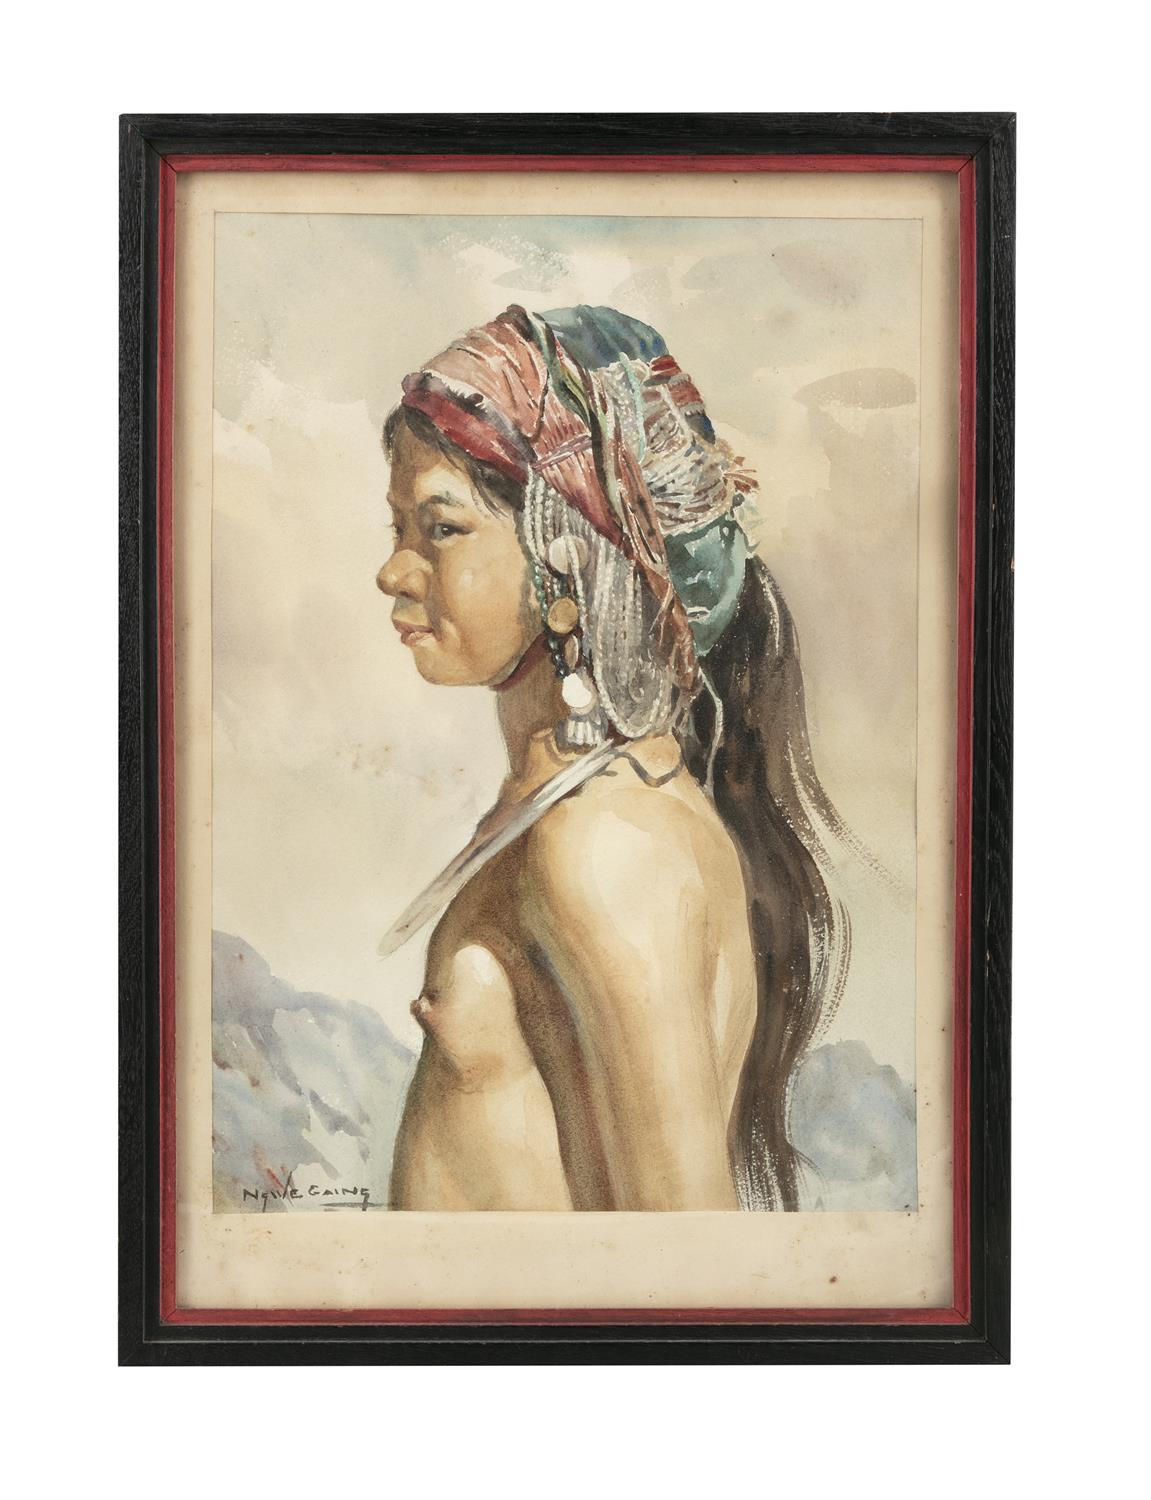 U Ngwe Gaing ငွေကိုင် (1901-1967) Portrait of a young girl from a tribe Mixed media, watercolour - Image 4 of 8